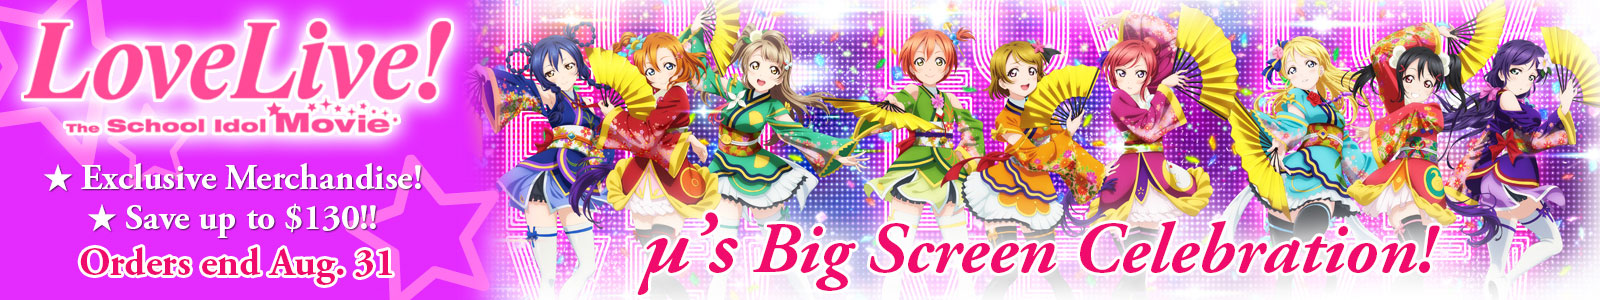 Love Live! The School Idol Movie - Exclusive Merchandise! - Save up to $130!